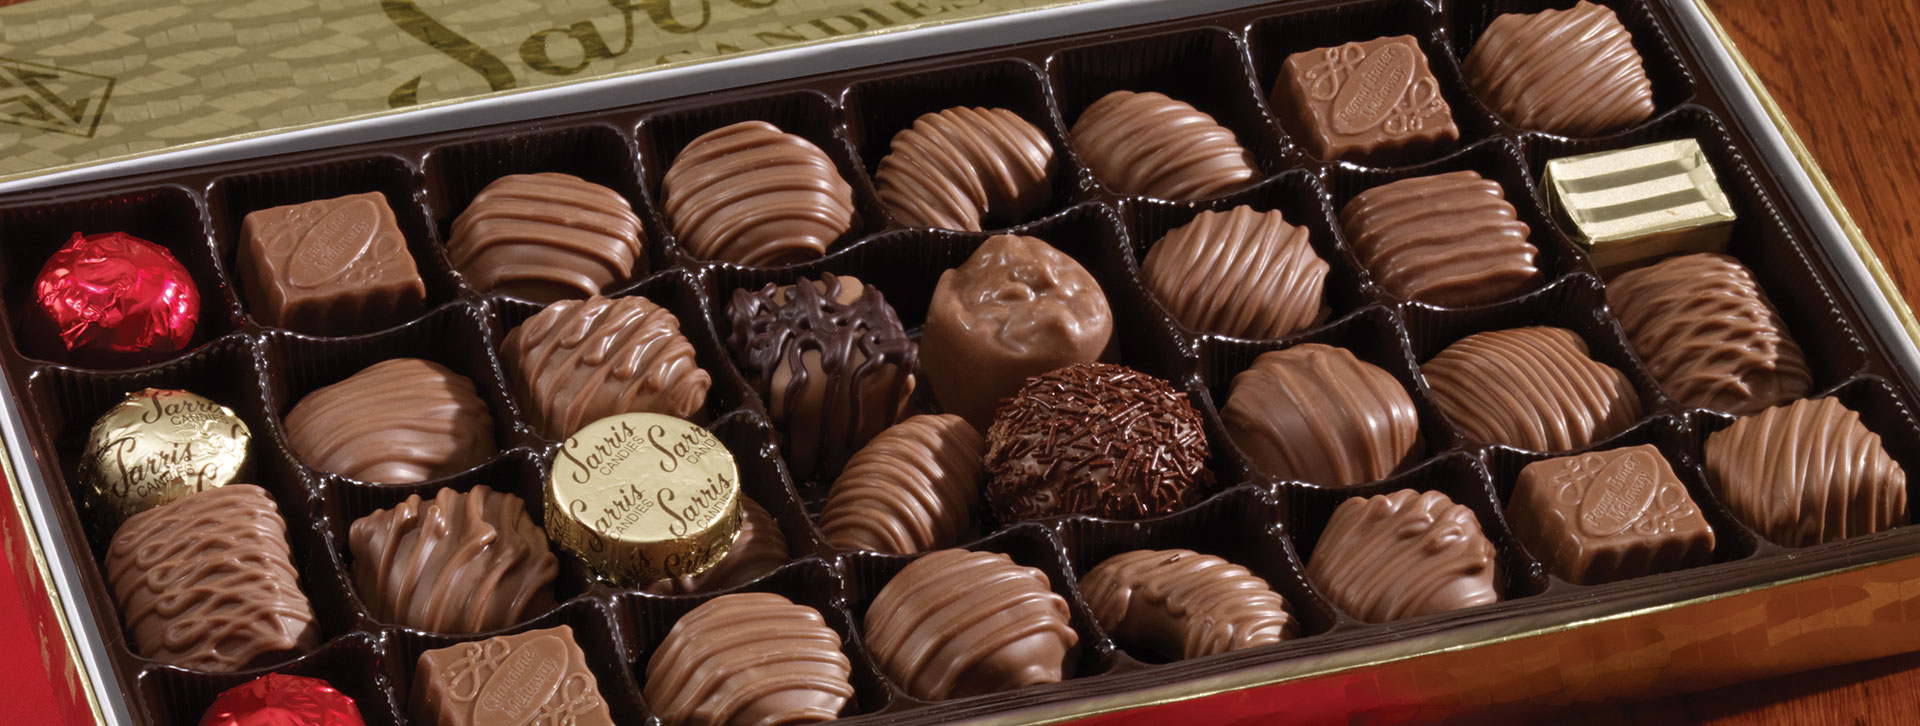 Sarris Candies The Worlds Best Chocolates